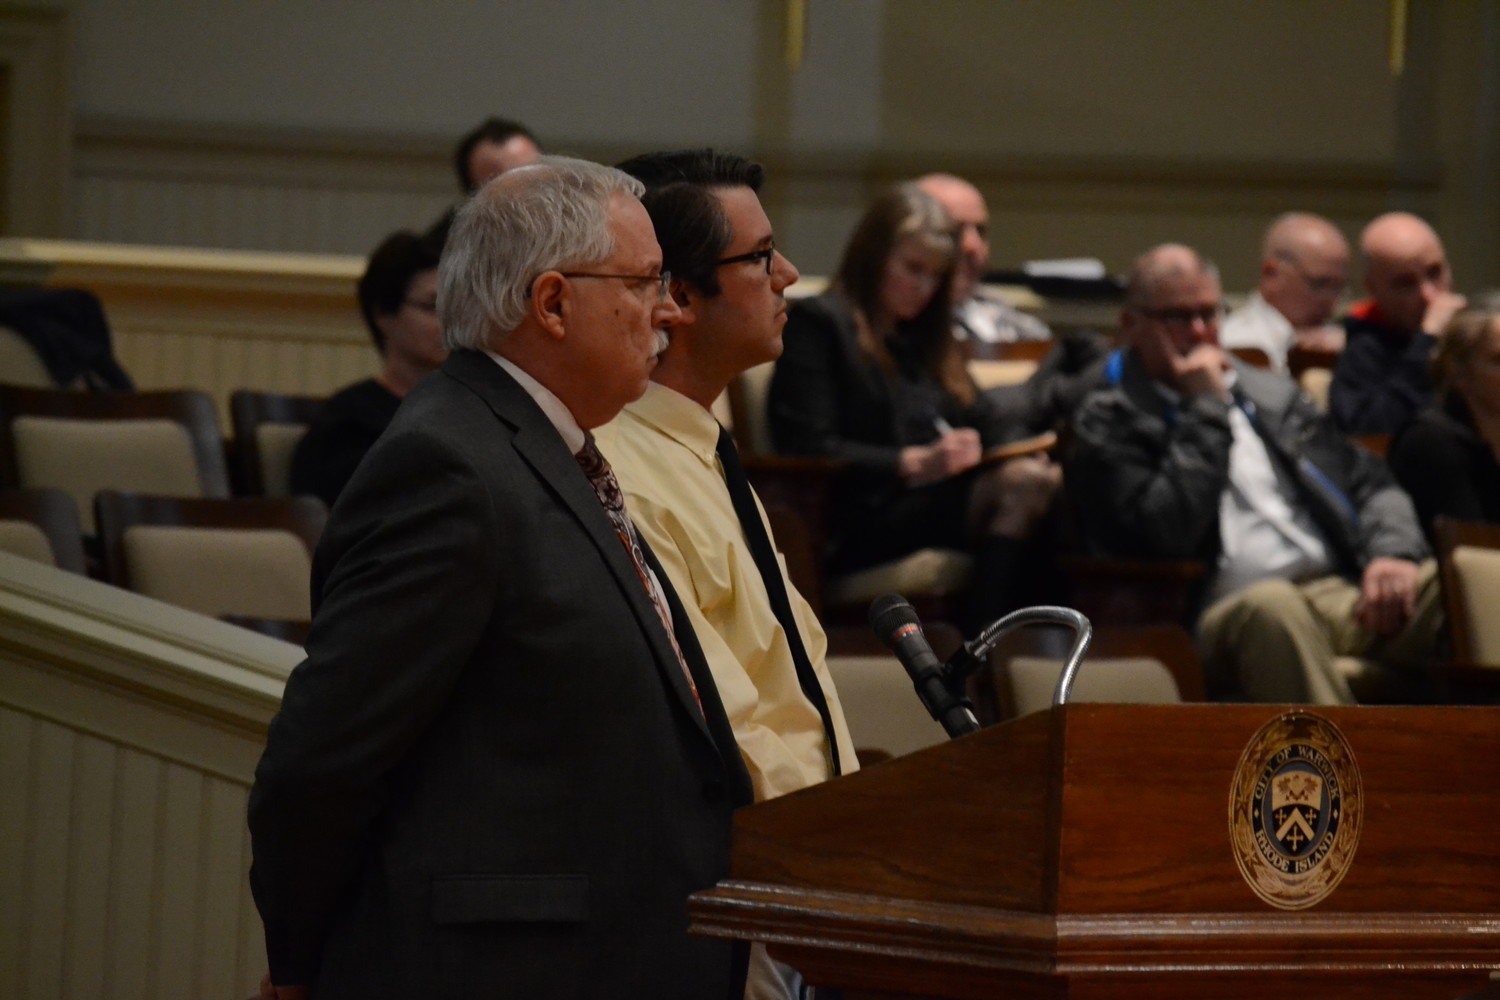 FIRM STANCE: Anthony Ferrucci, school finance director (left), and Doug Alexander, school technology director, listen to inquiries from Councilman Howe on Monday night in the council chambers.